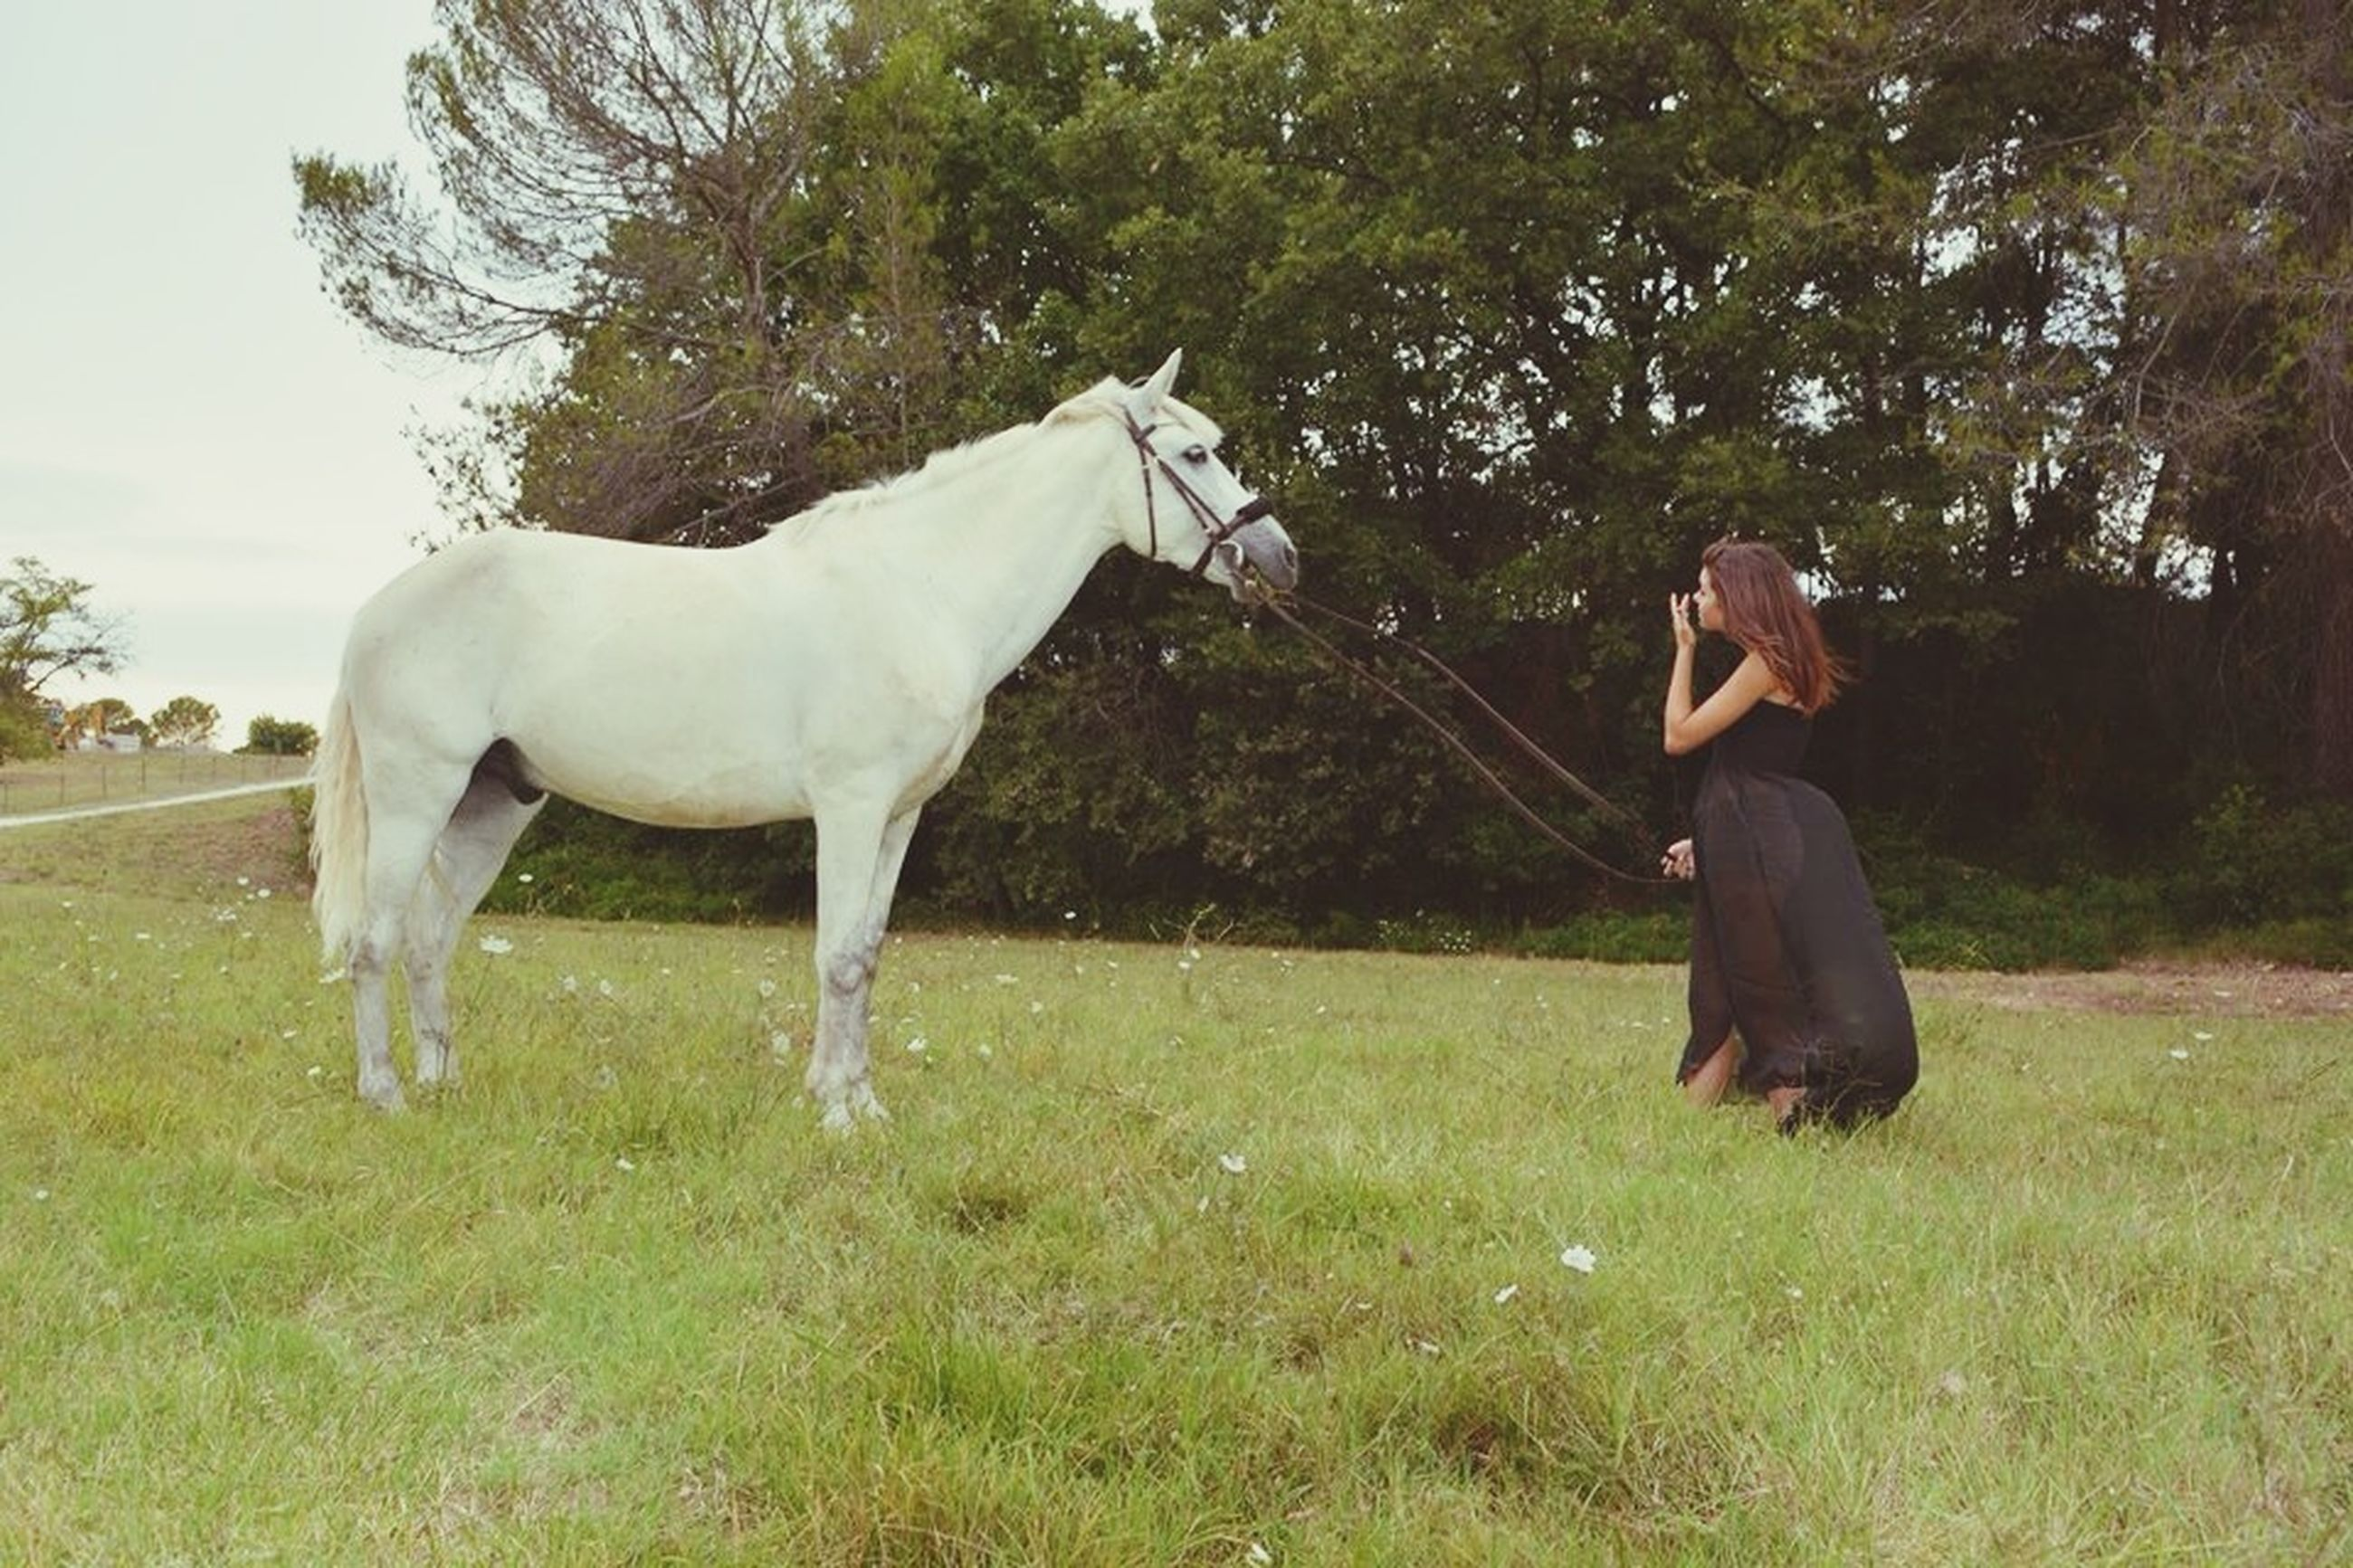 grass, full length, standing, horse, tree, field, domestic animals, animal themes, grassy, casual clothing, side view, lifestyles, mammal, nature, one animal, young adult, day, sky